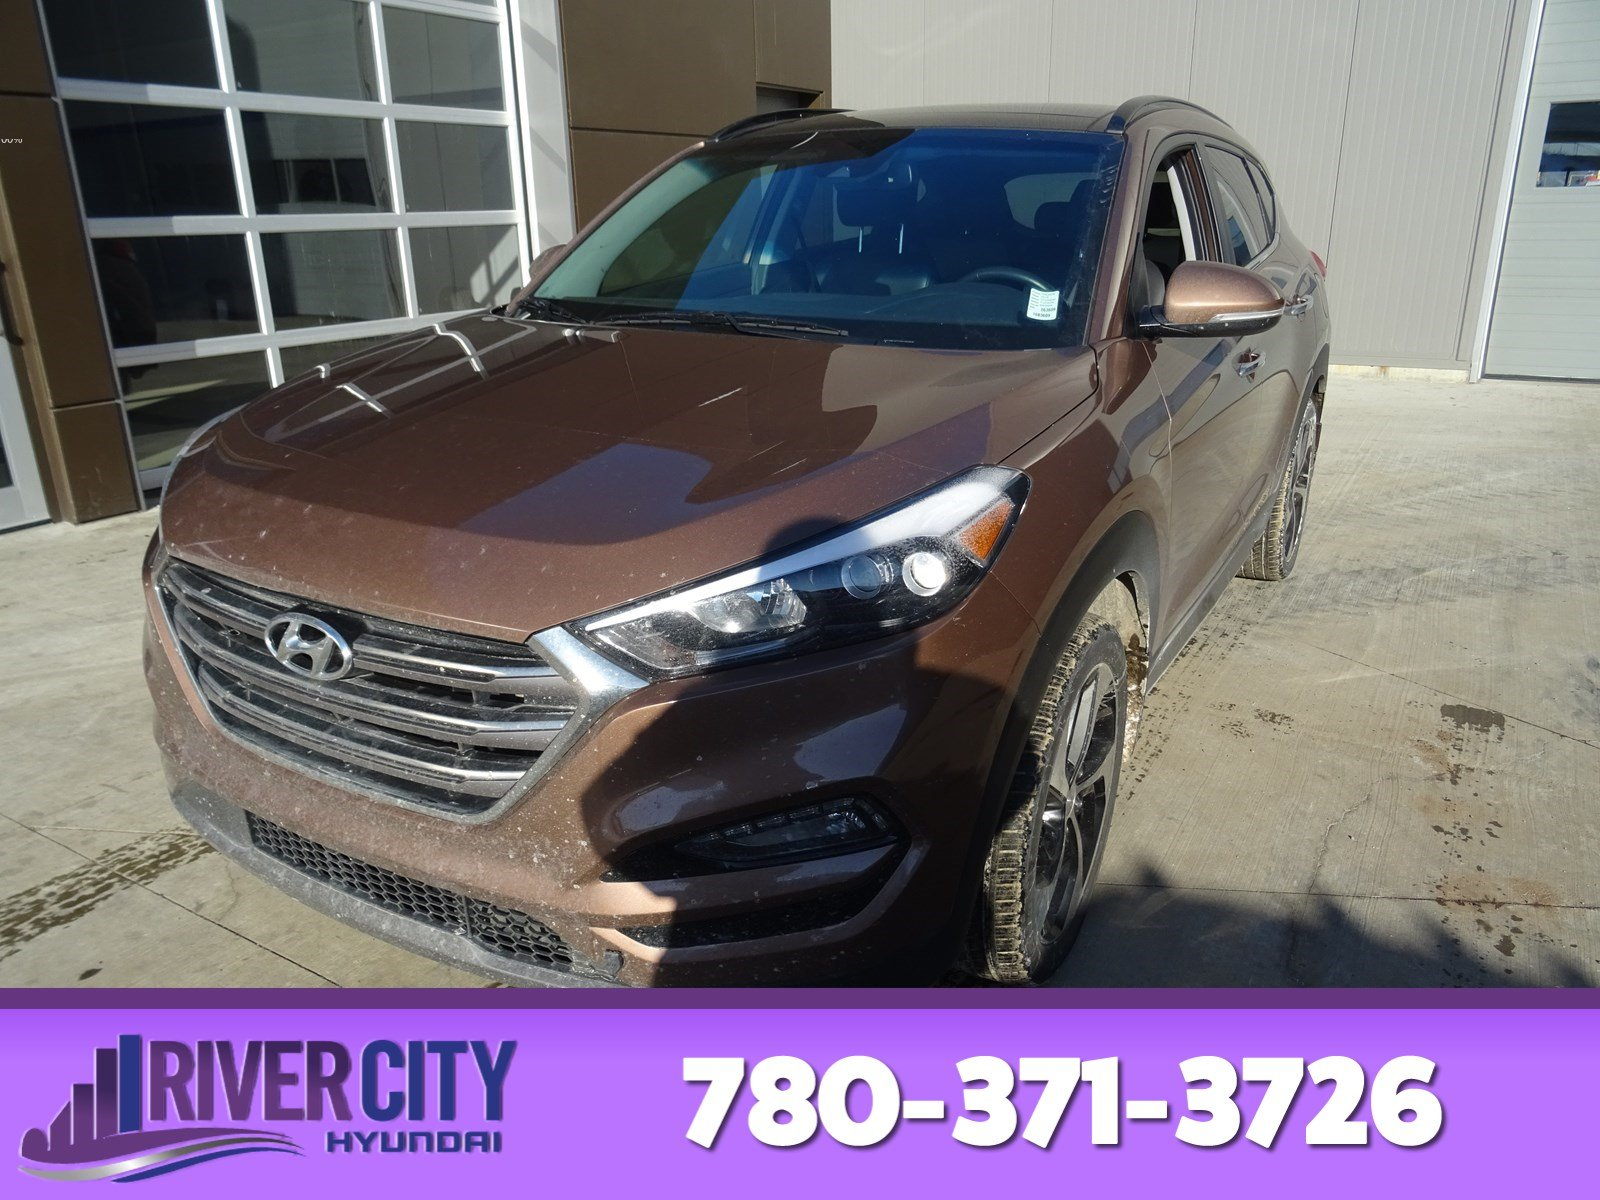 Photo Pre-Owned 2016 Hyundai Tucson AWD ULTIMATE TURBO Navigation GPS, Leather, Heated Seats, Panoramic Roof, Back-up Cam, AC,